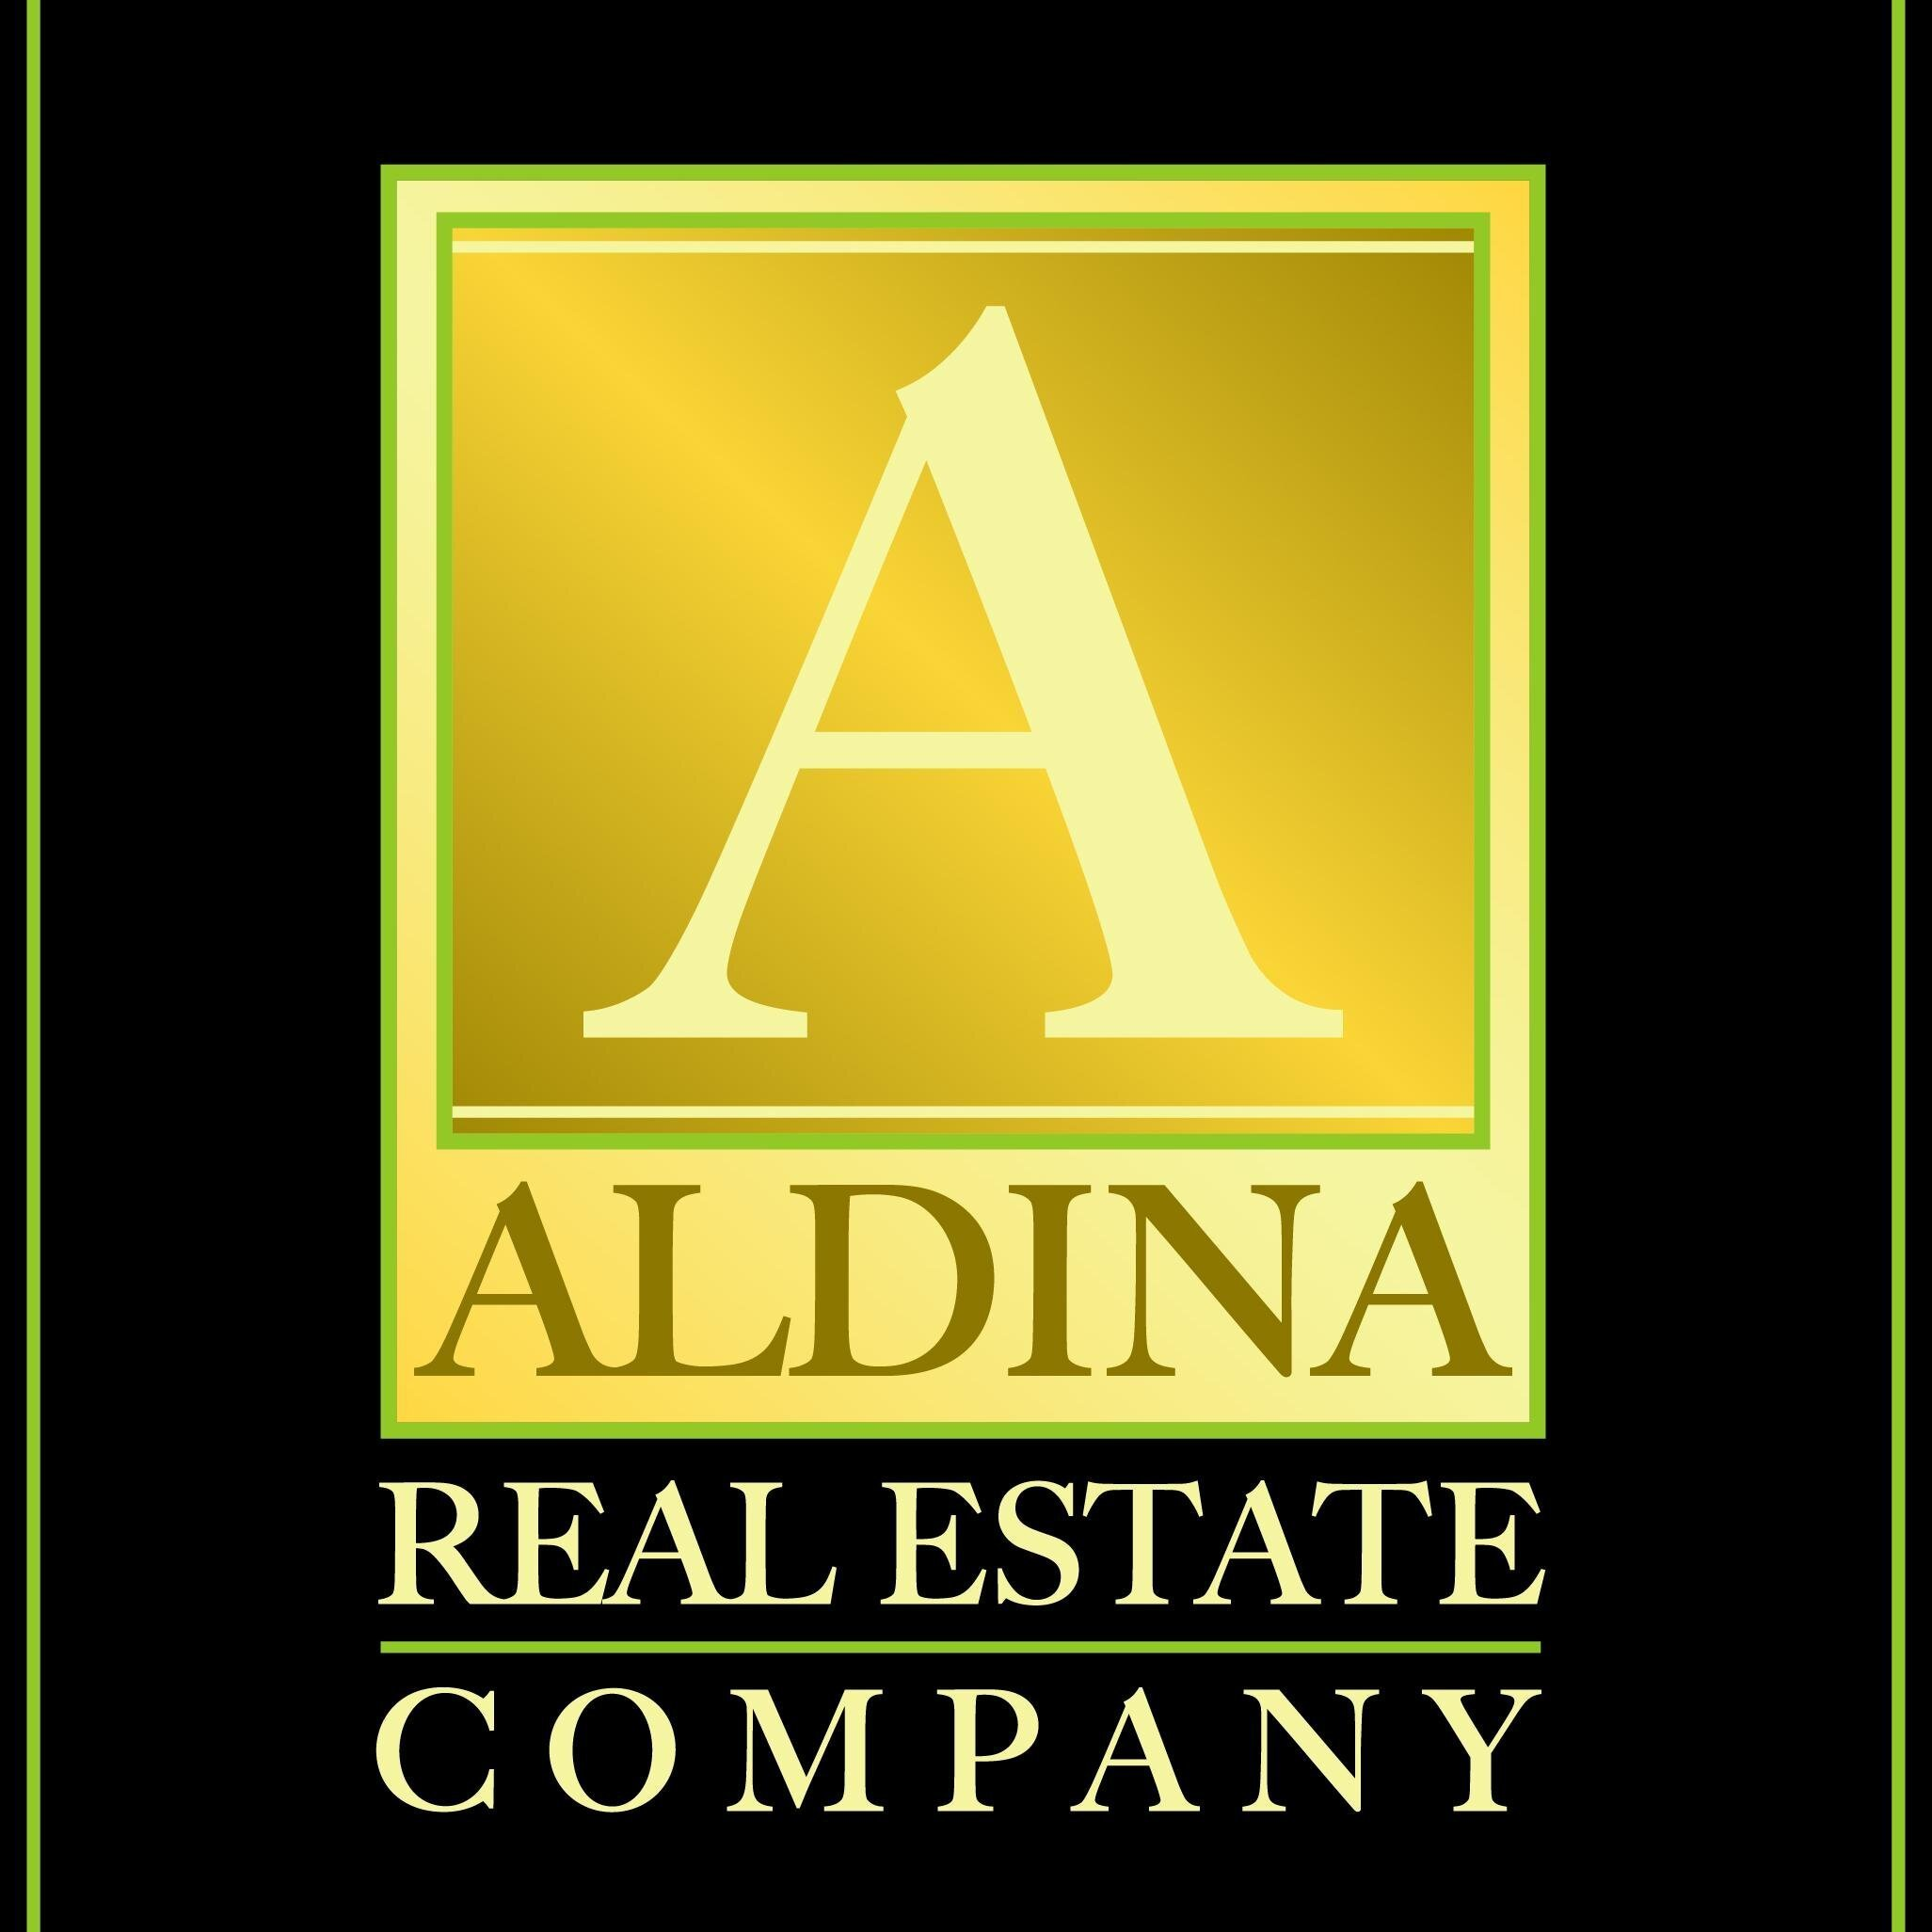 Aldina Real Estate